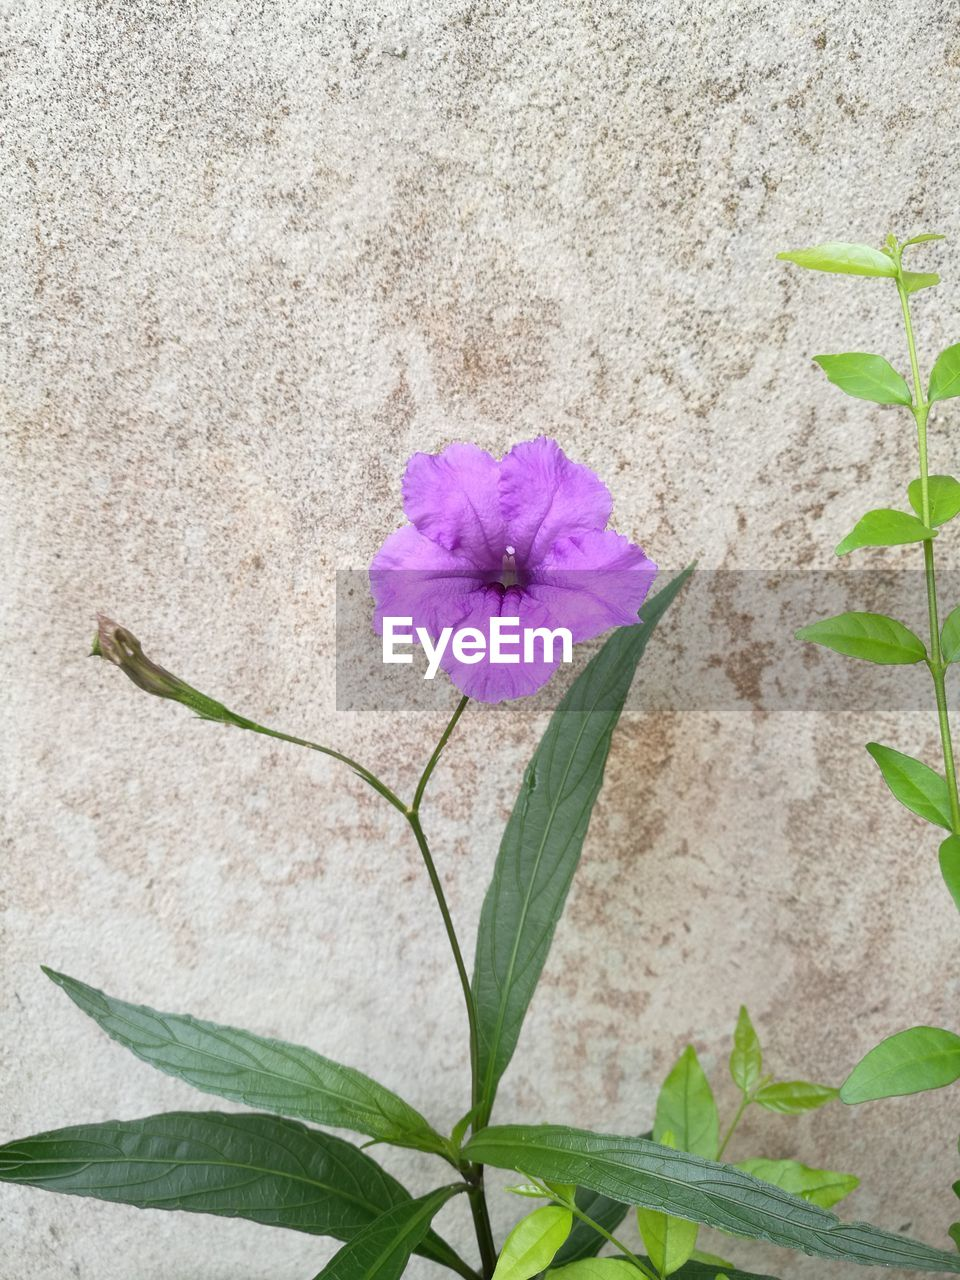 flower, fragility, petal, nature, flower head, plant, freshness, growth, beauty in nature, leaf, no people, outdoors, blooming, day, periwinkle, close-up, petunia